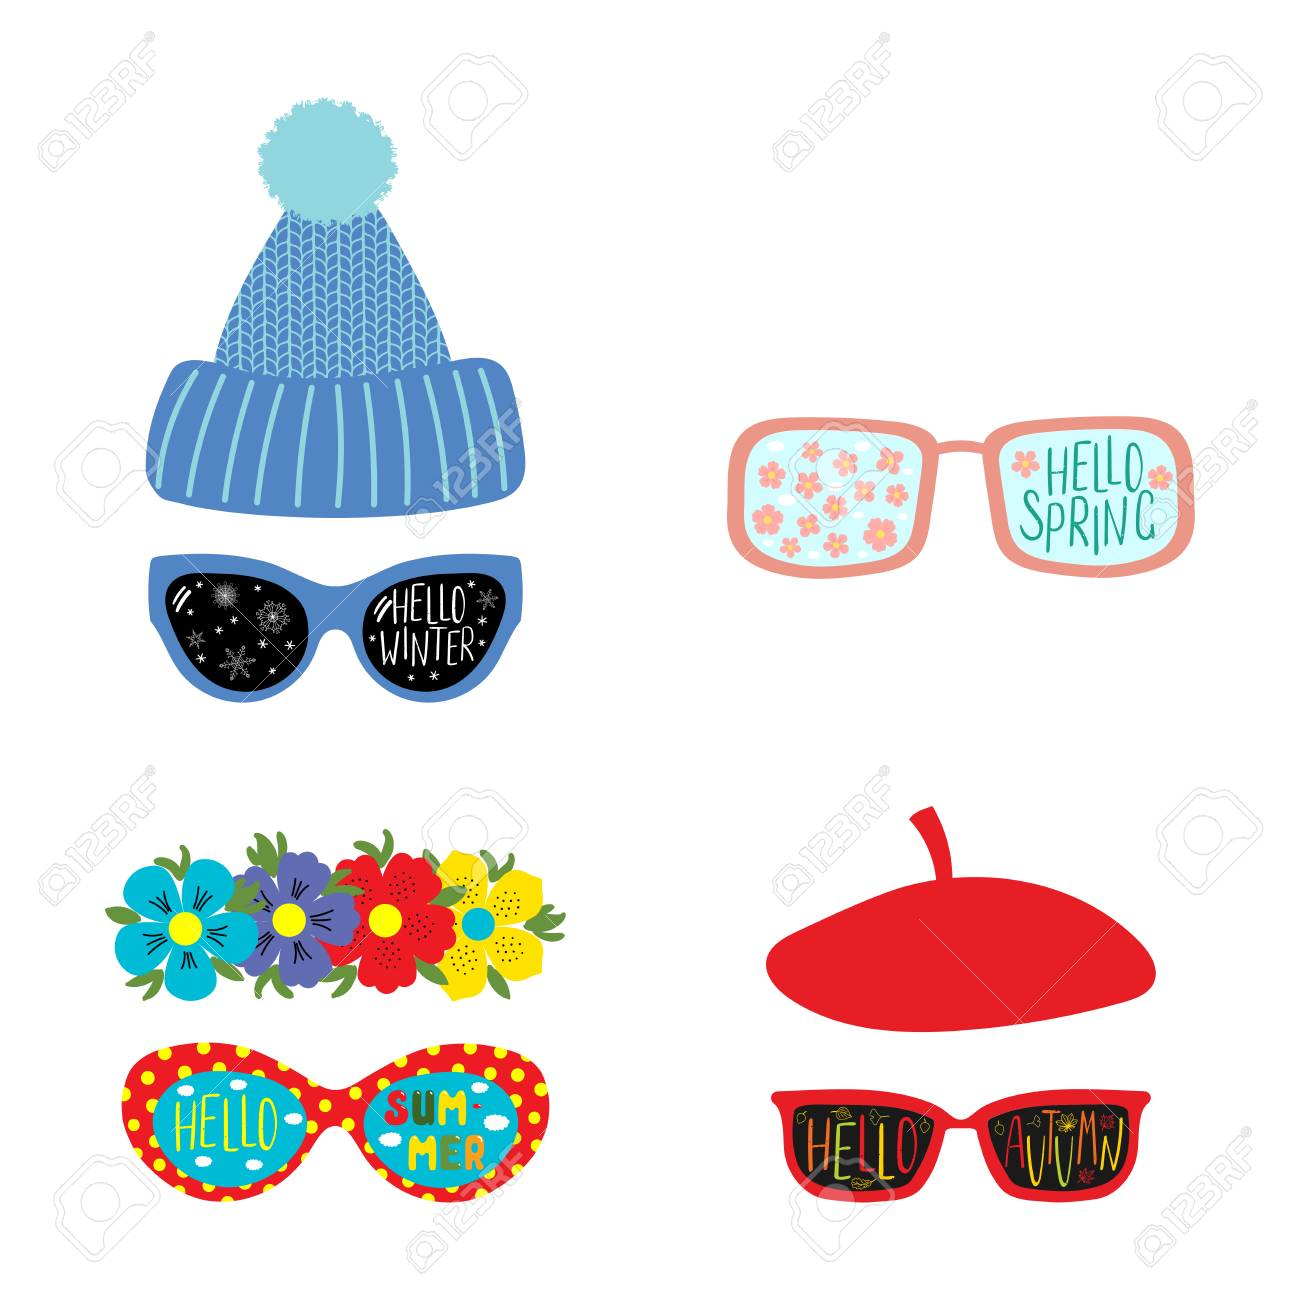 aeeb368a97 Concept four seasons. Set of hand drawn vector illustrations of sunglasses  with summer